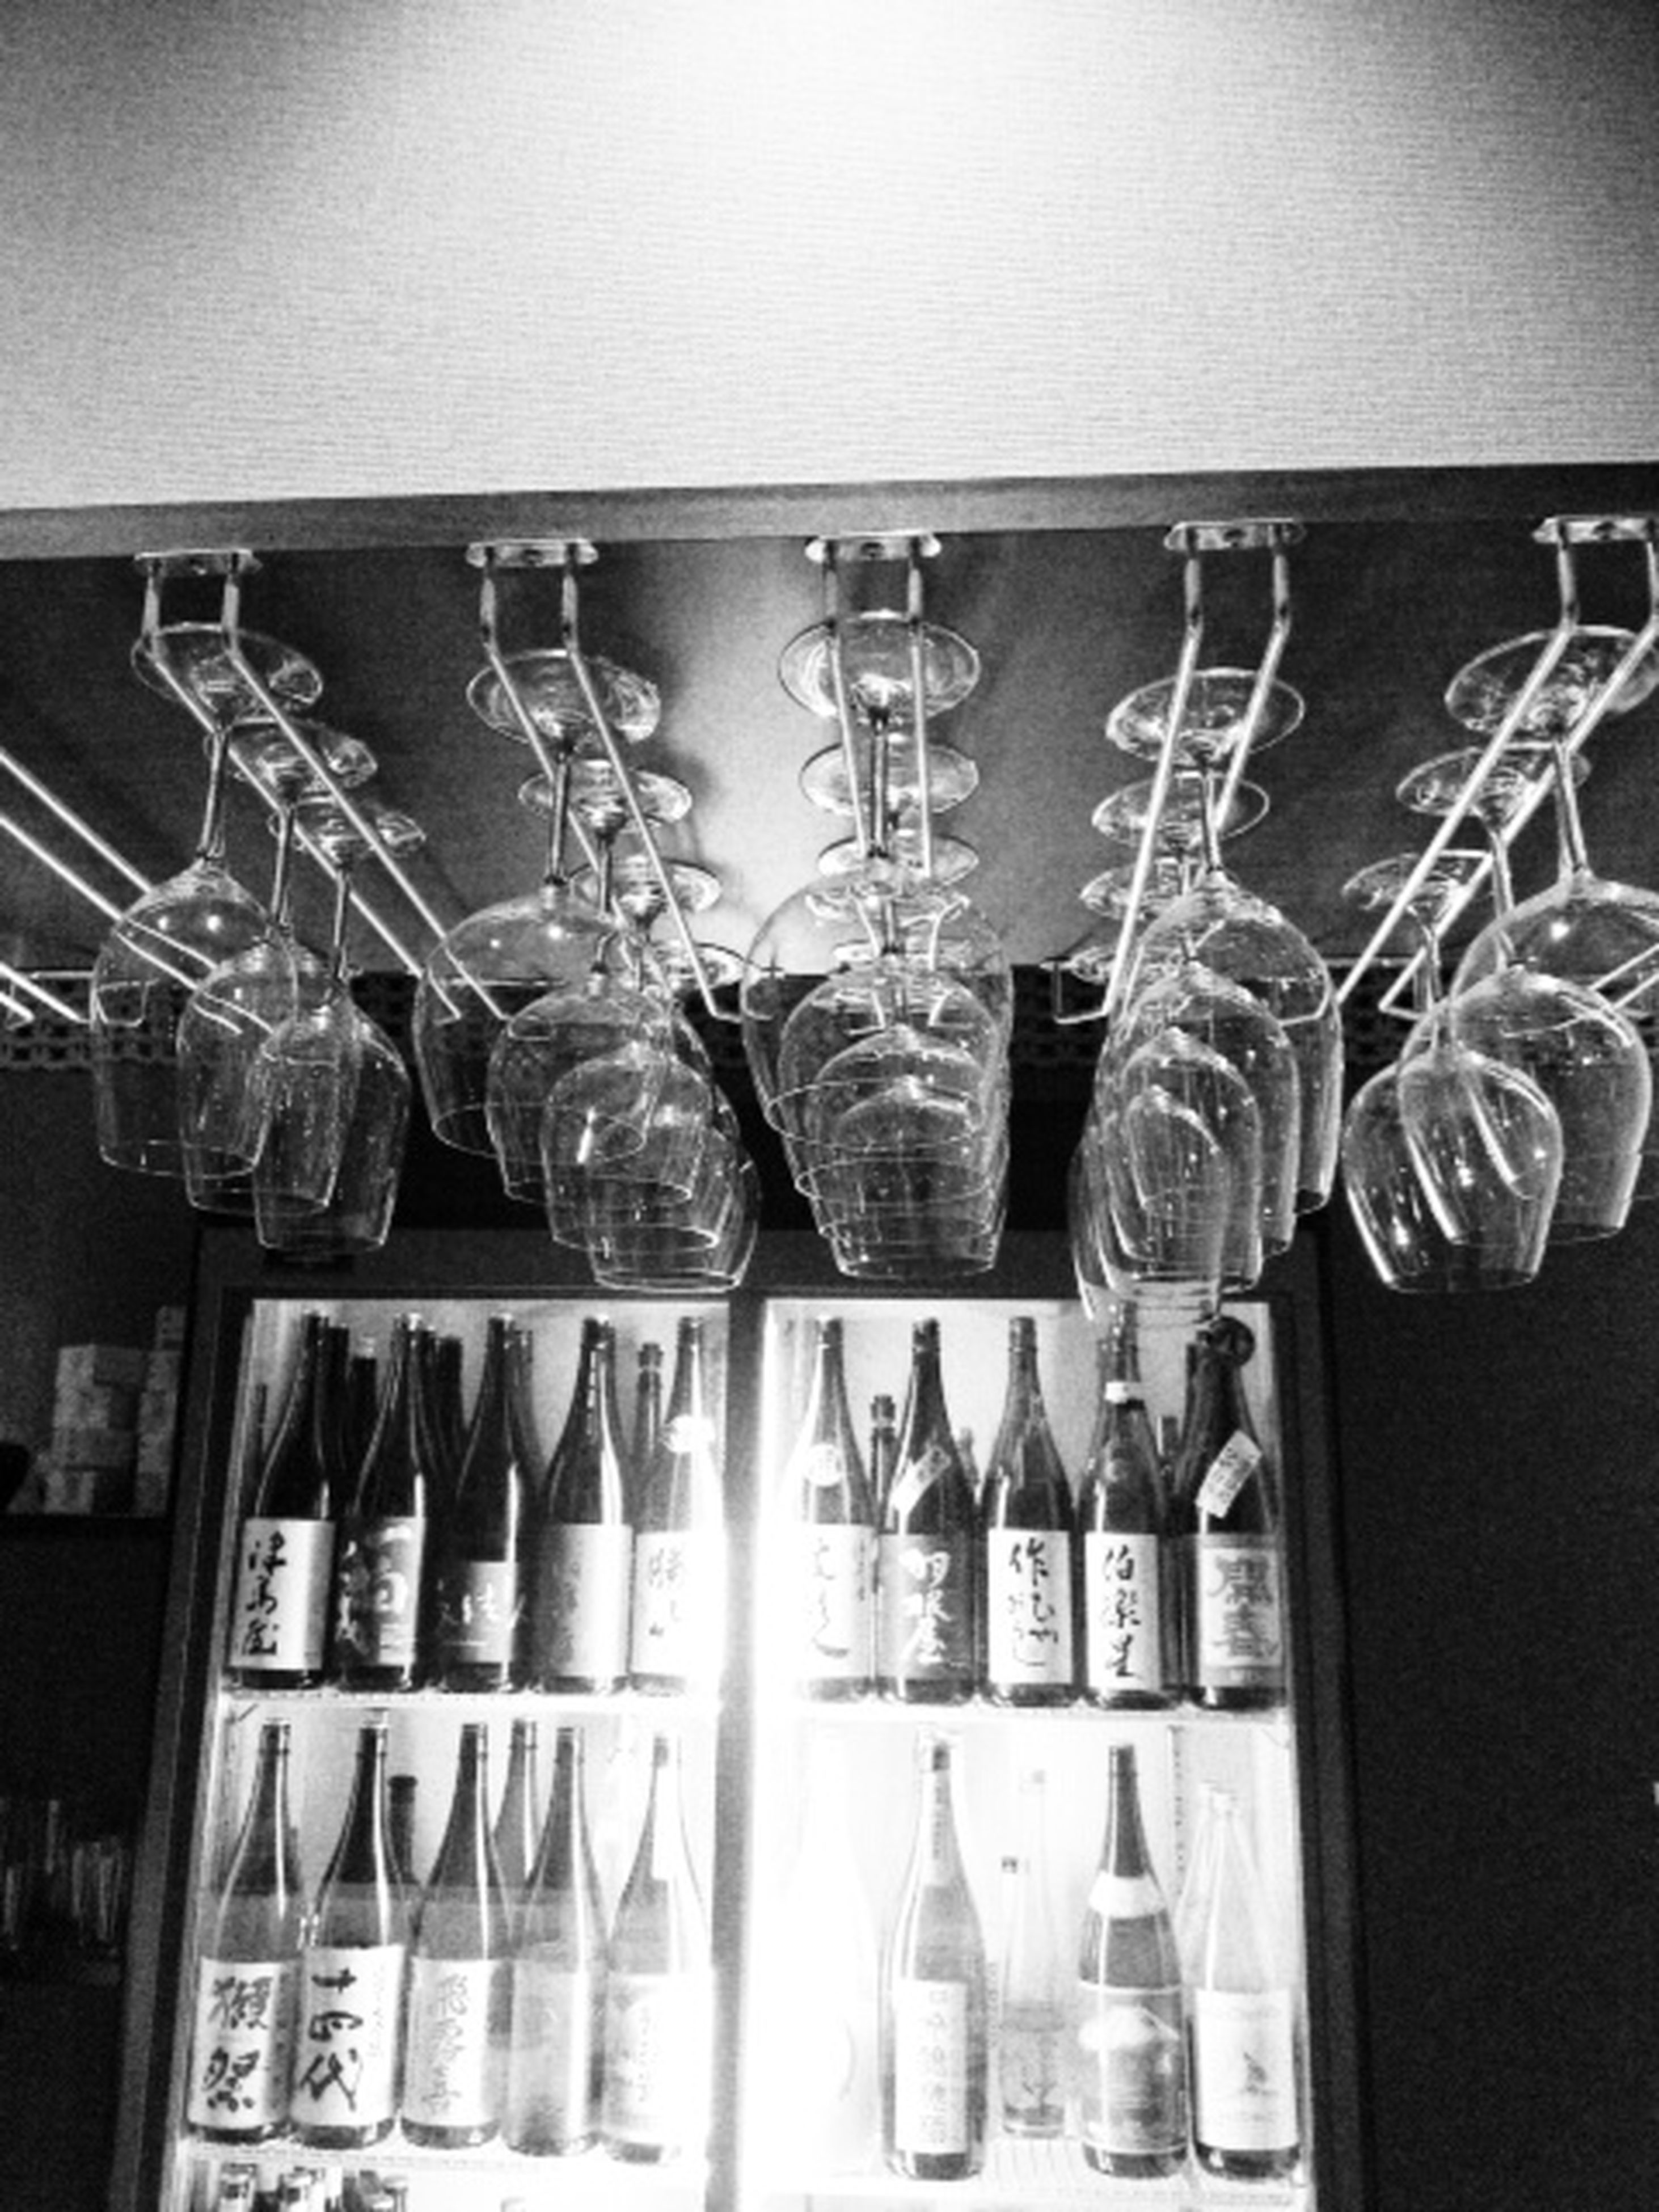 indoors, large group of objects, still life, hanging, variation, shelf, arrangement, in a row, glass - material, choice, abundance, order, close-up, bottle, reflection, side by side, metal, collection, transparent, retail